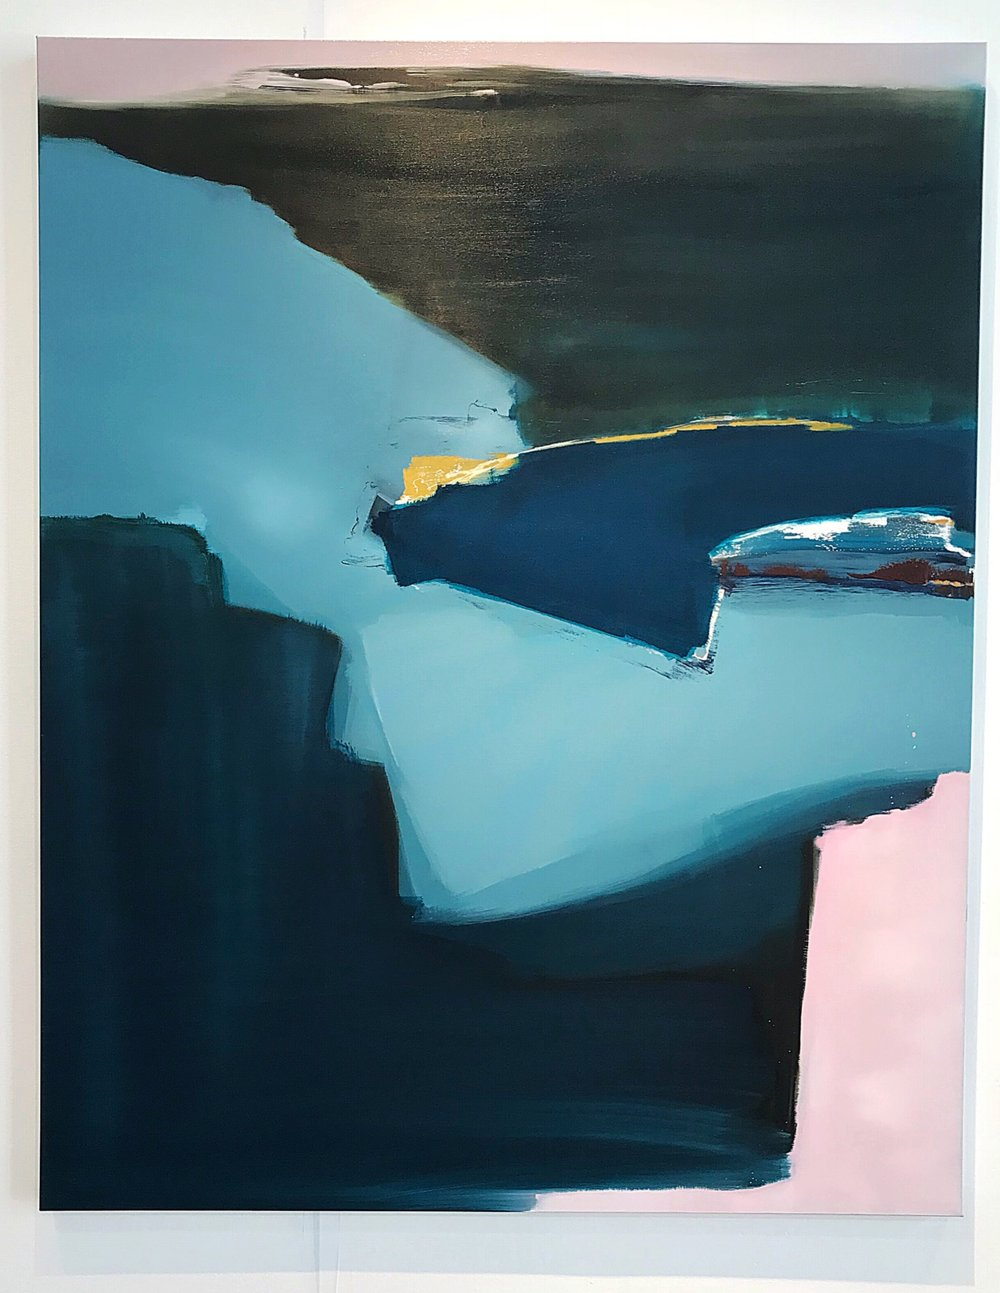 painting17The+Form+48x60+acrylic+and+oil+on+canvas+$4,000.JPG